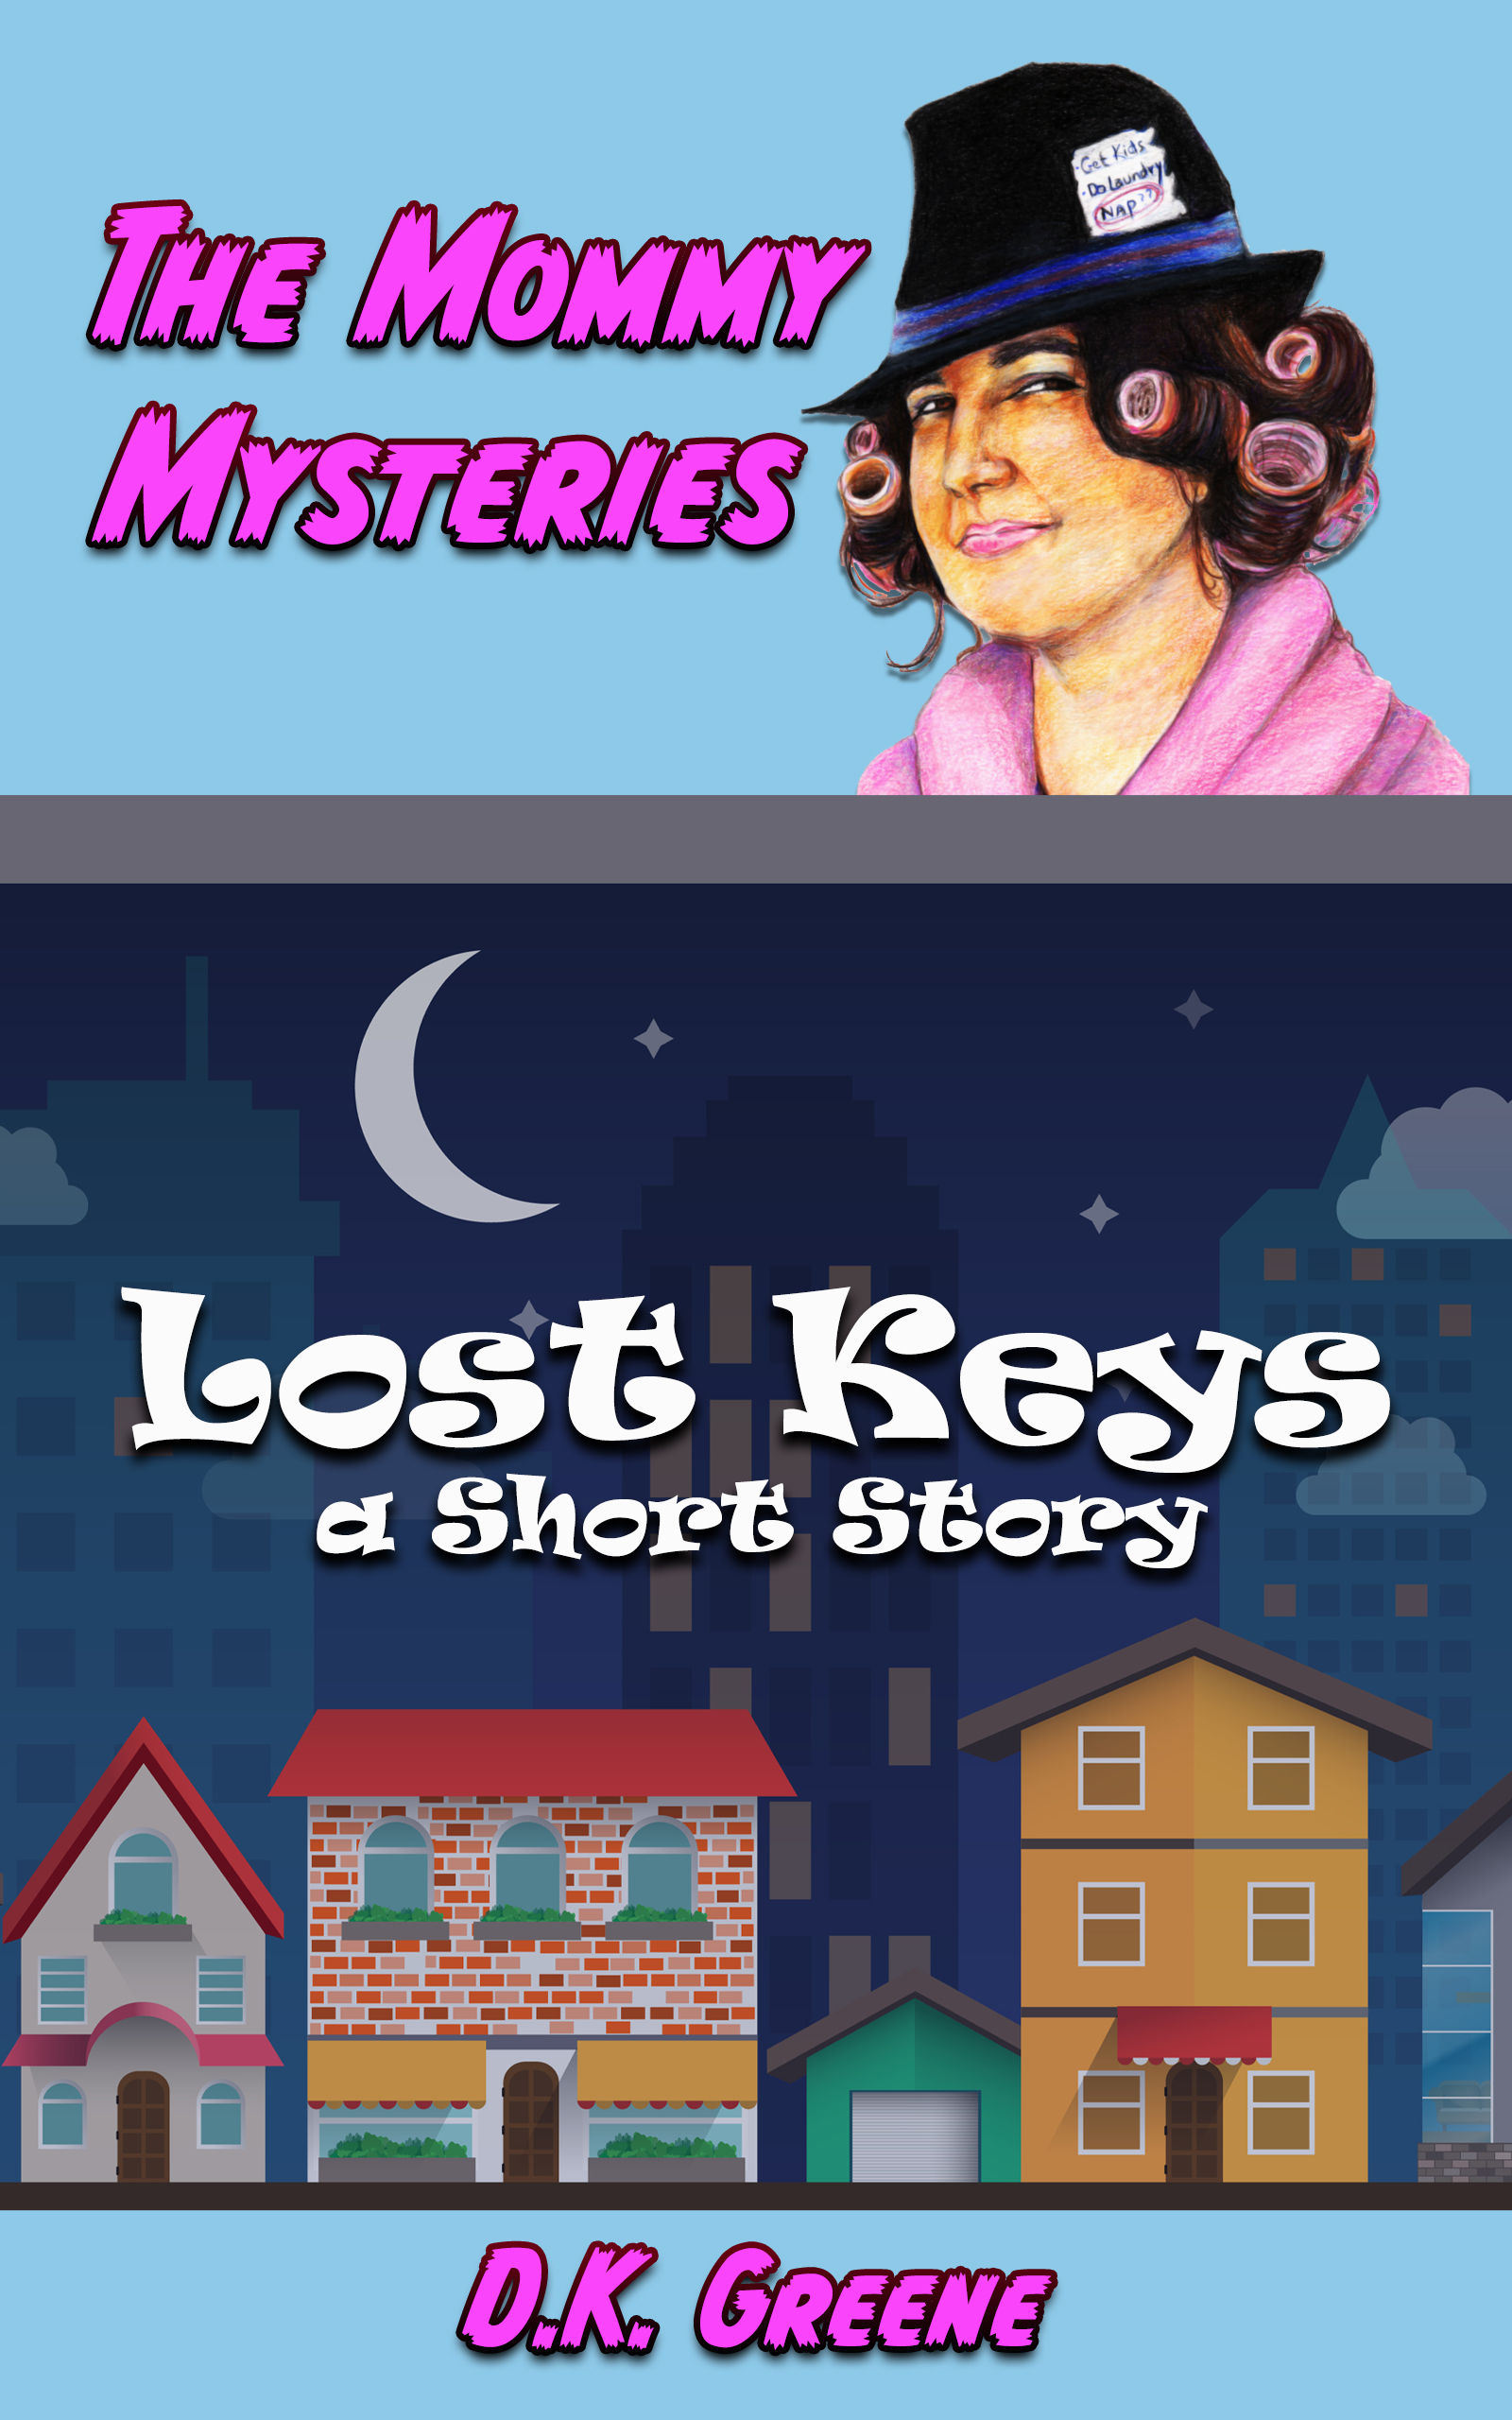 E-book cover for Lost Keys: A Short Story. A quiet neighborhood at night with a female detective in curlers.